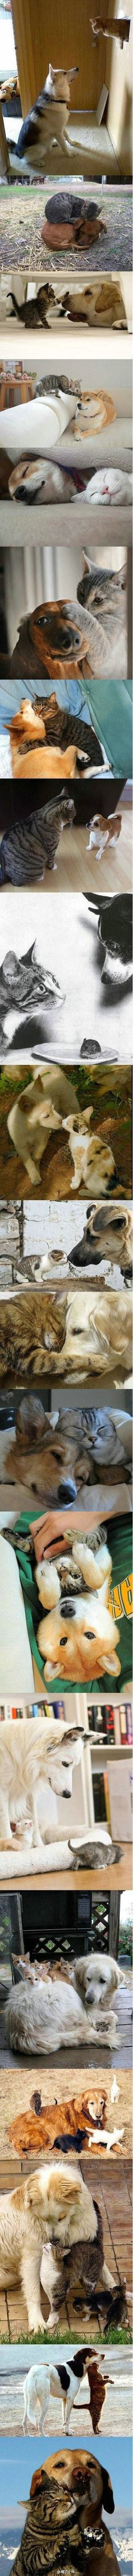 Cats and dogs:)